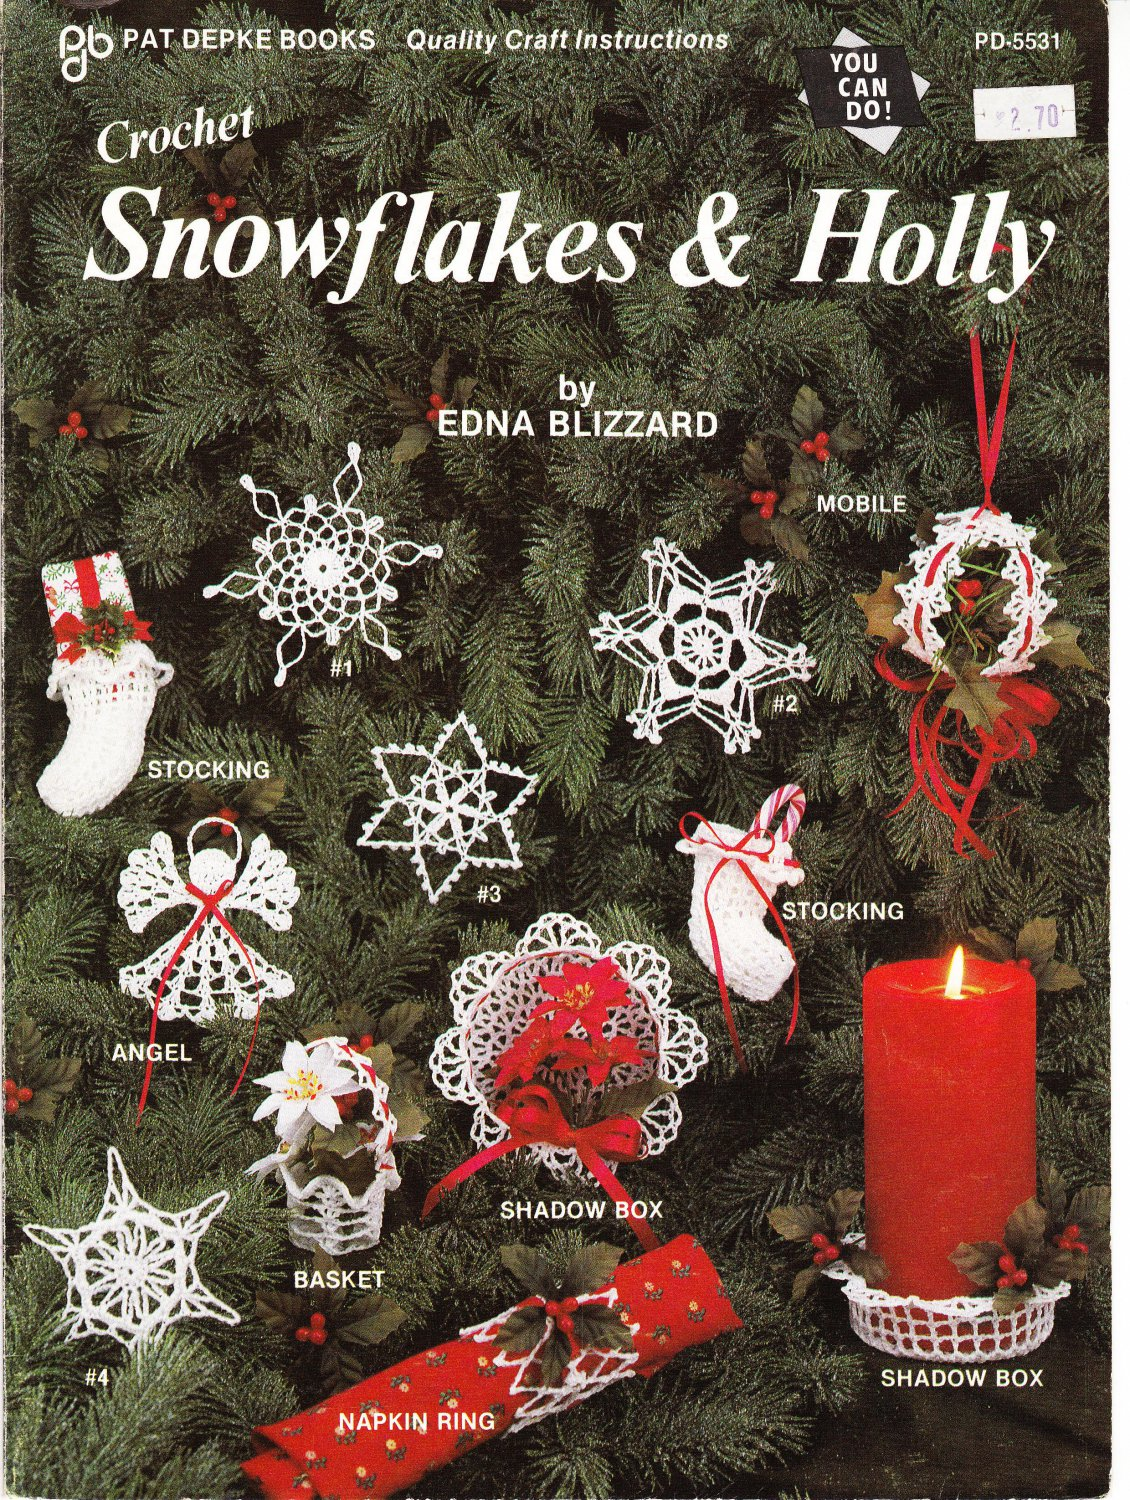 Pat Depke-Craft World Inc 1985 Crochet Snowflakes & Holly Leaflet #PD-5531